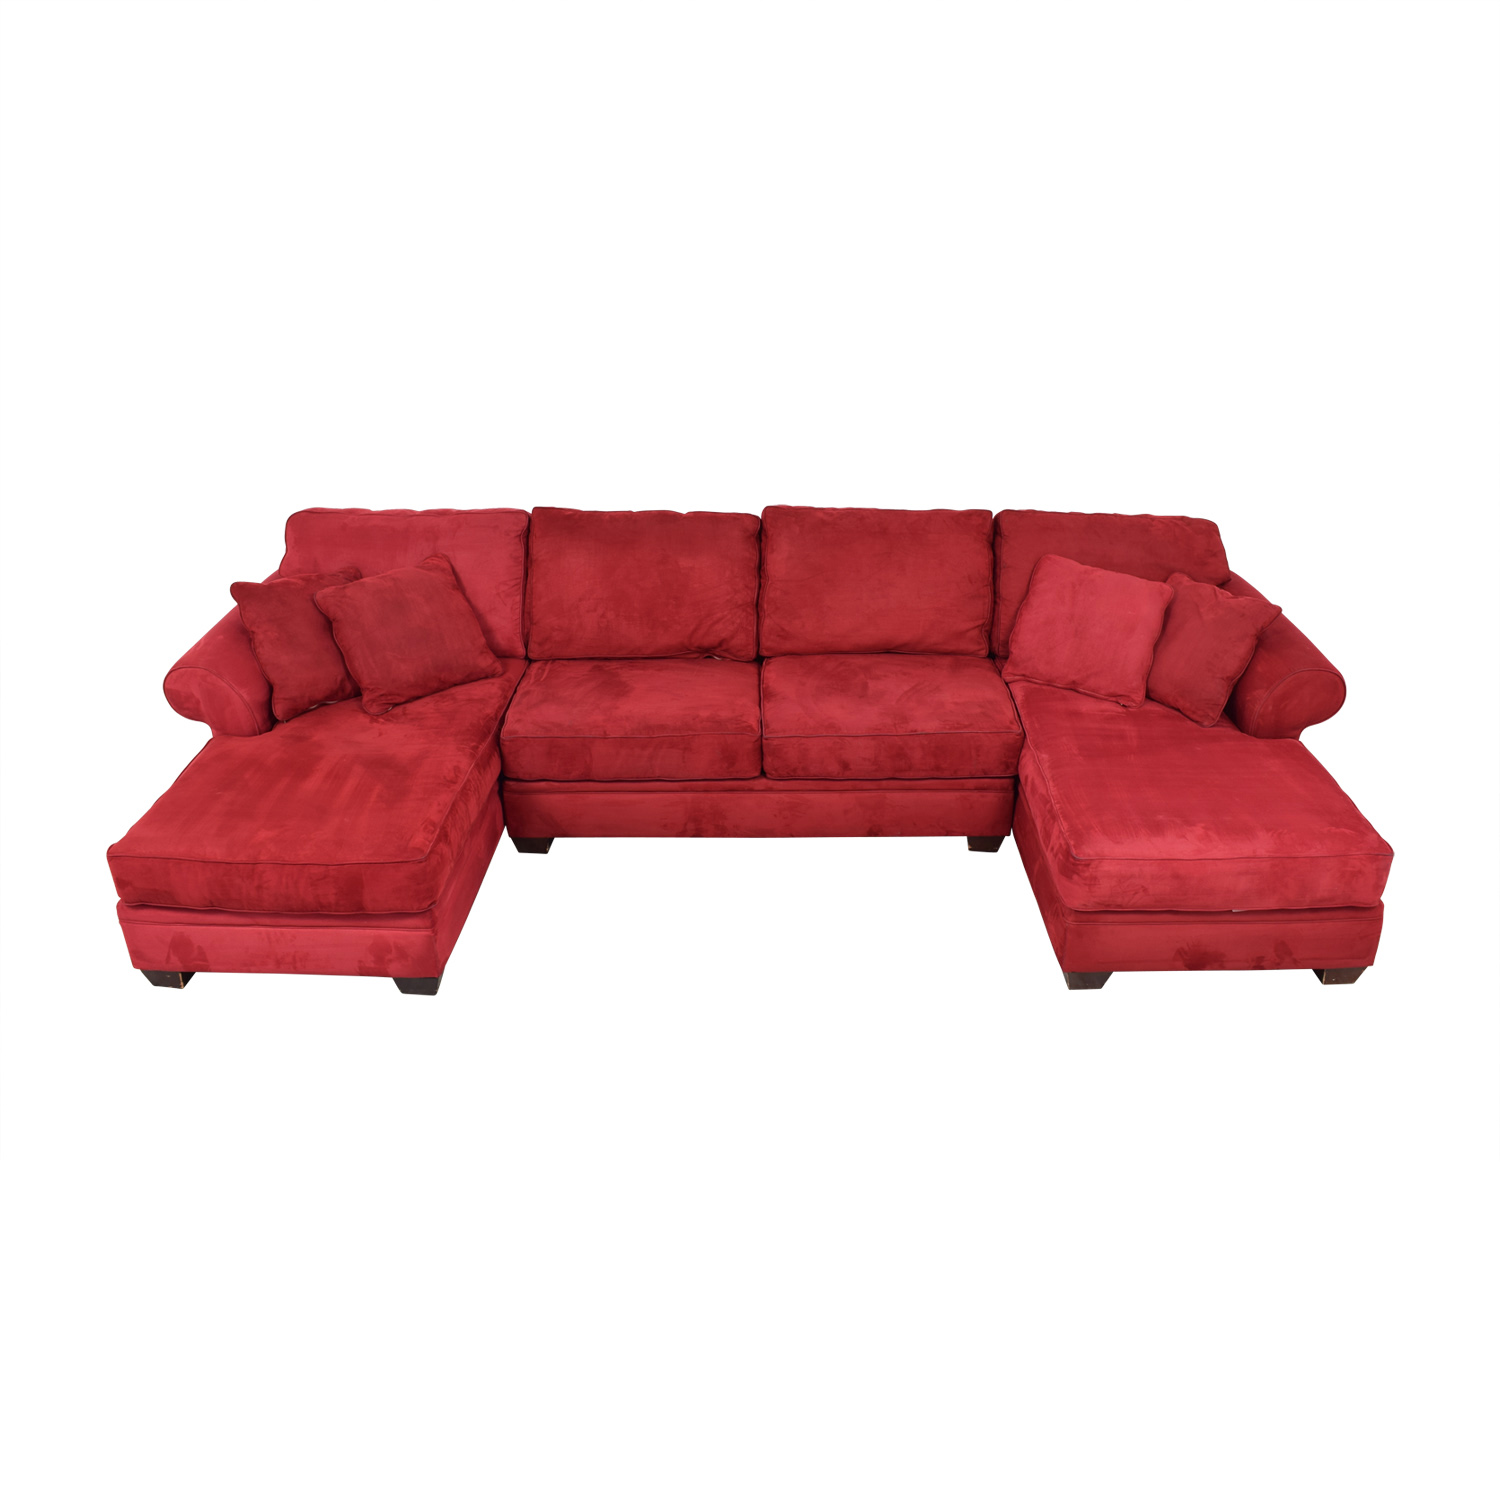 85% OFF - Macy\'s Macy\'s U-Shaped Red Double Chaise Sectional / Sofas